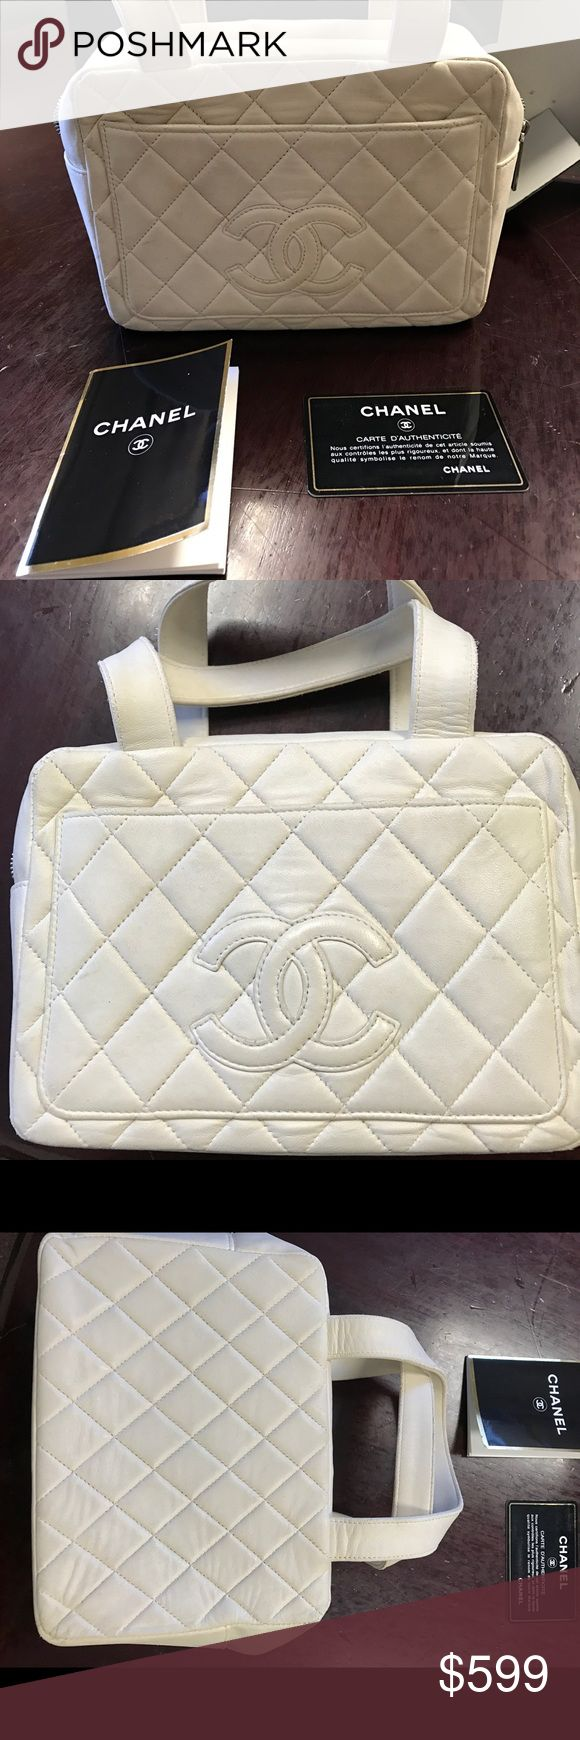 Cute Chanel Handbag This is the cutest little bag. Authentic Chanel off white/bone. In good used condition. Inside zip pocket. Comes with card, booklet and box. Perfect size for phone, keys, cards and more!  There is some dirt and wear on the bag. Please look at photos. Priced for quick sale. Trade value is $900. CHANEL Bags